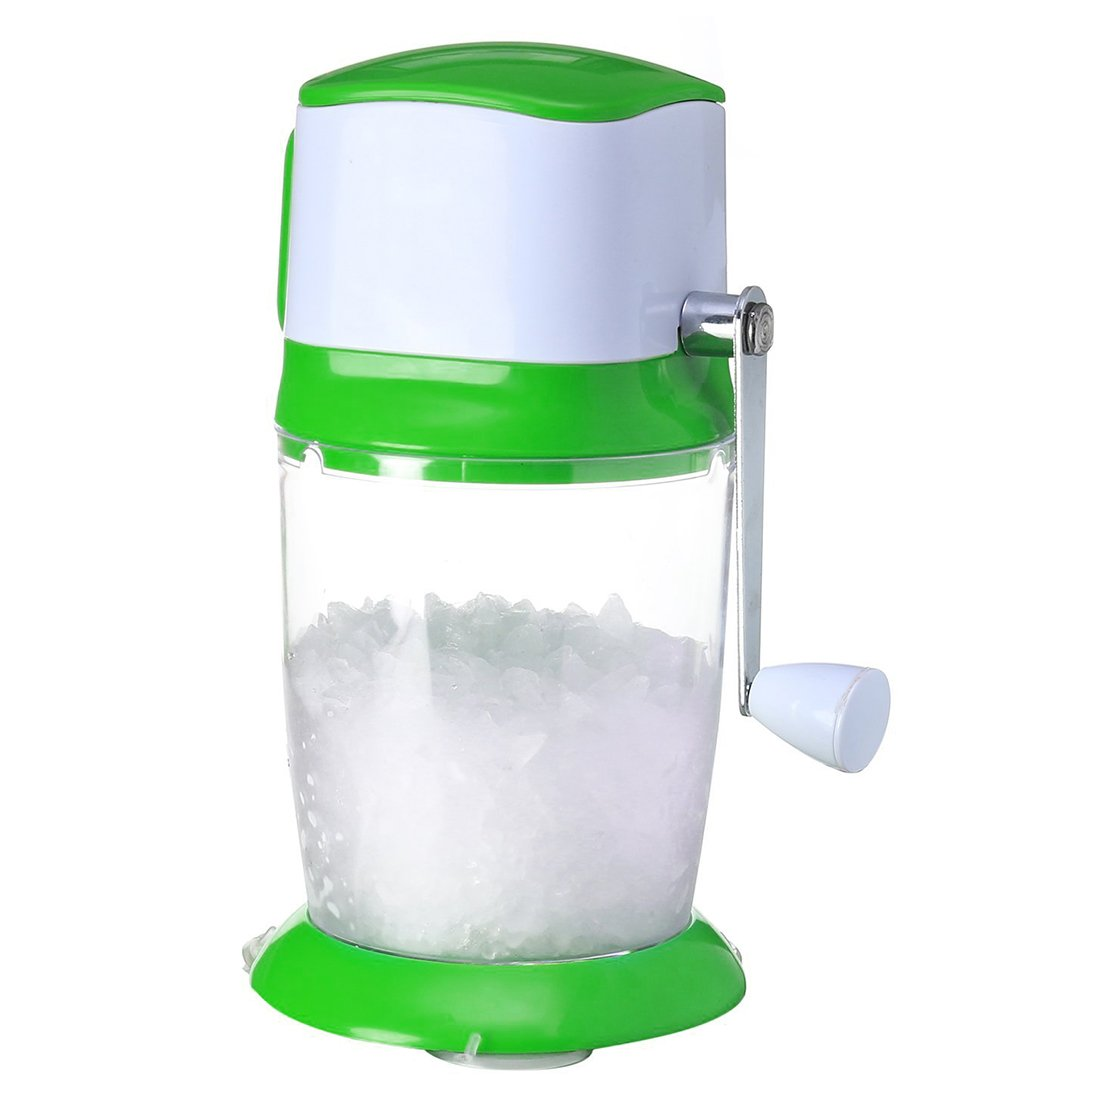 [UPGRADED] Ice Crusher Shaver Manual Hand Crank Ice Grinder for Fine or Coarse Pieces - Ice Treats or Slushy Desserts Large 50 OZ Bucket Shaved Ice Treats or Slushy Desserts 304 Stainless Steel Blade GROWNEER icecrusher